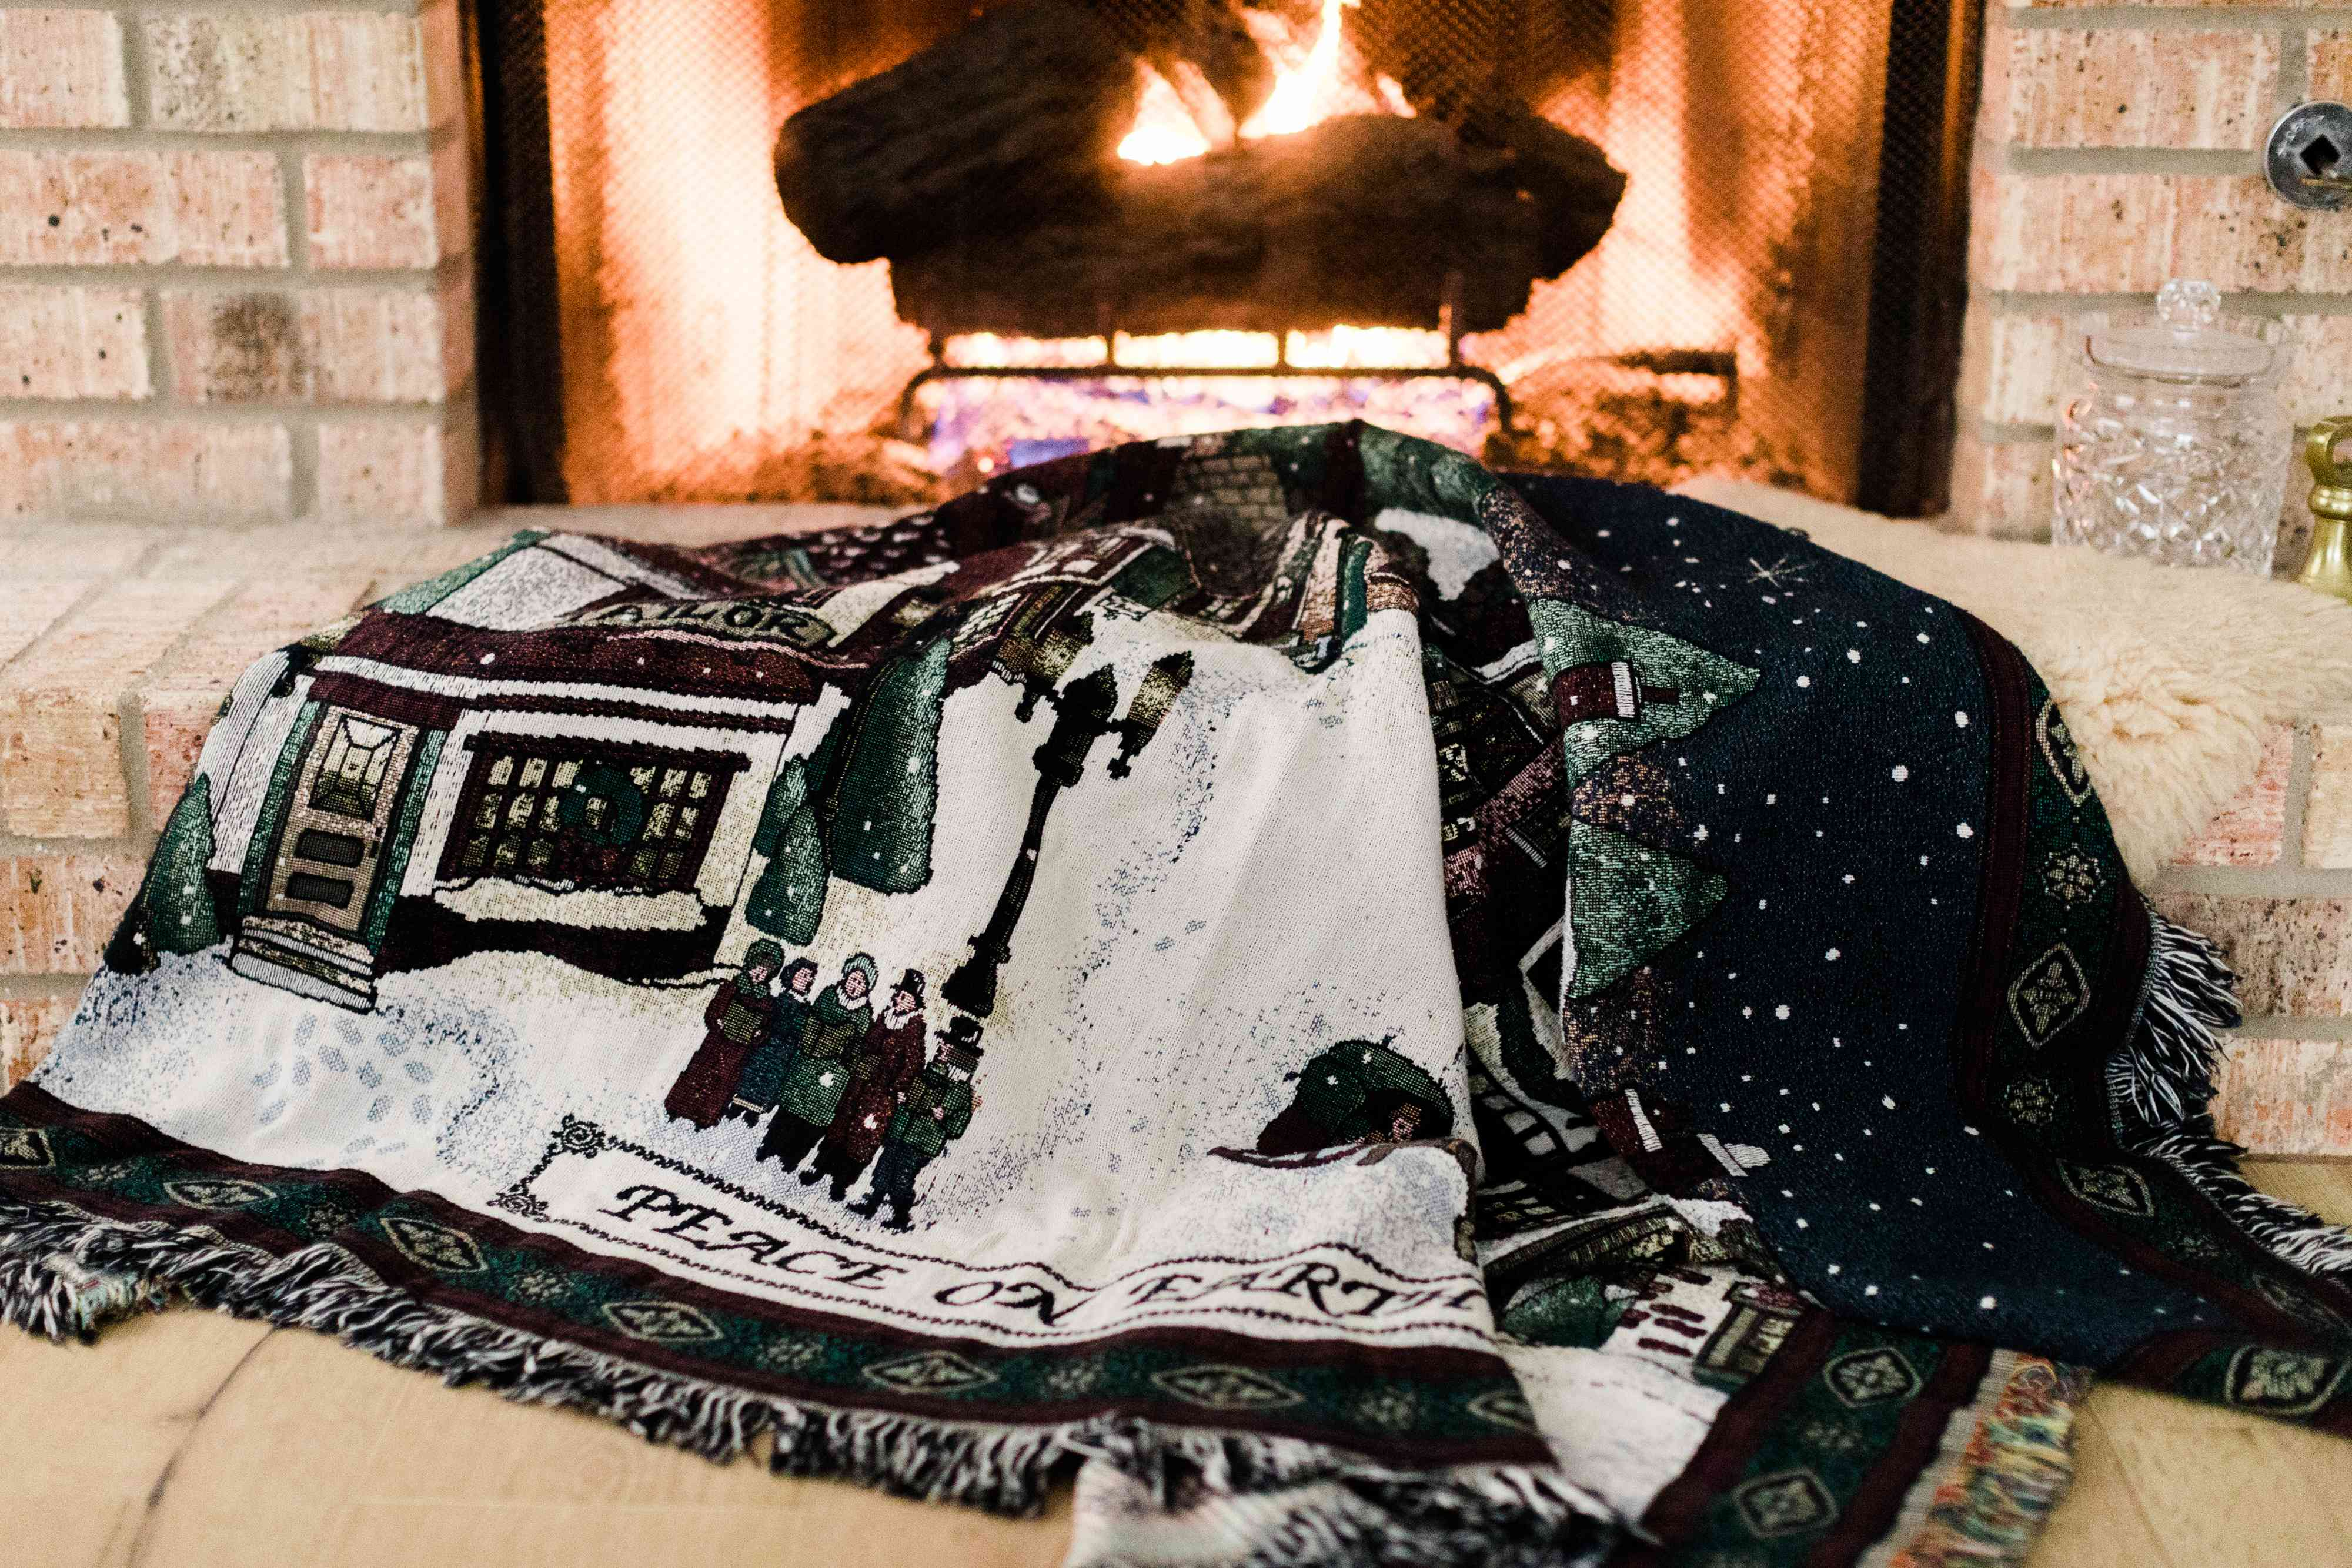 Christmas blanket laying on floor in front of lighted fireplace